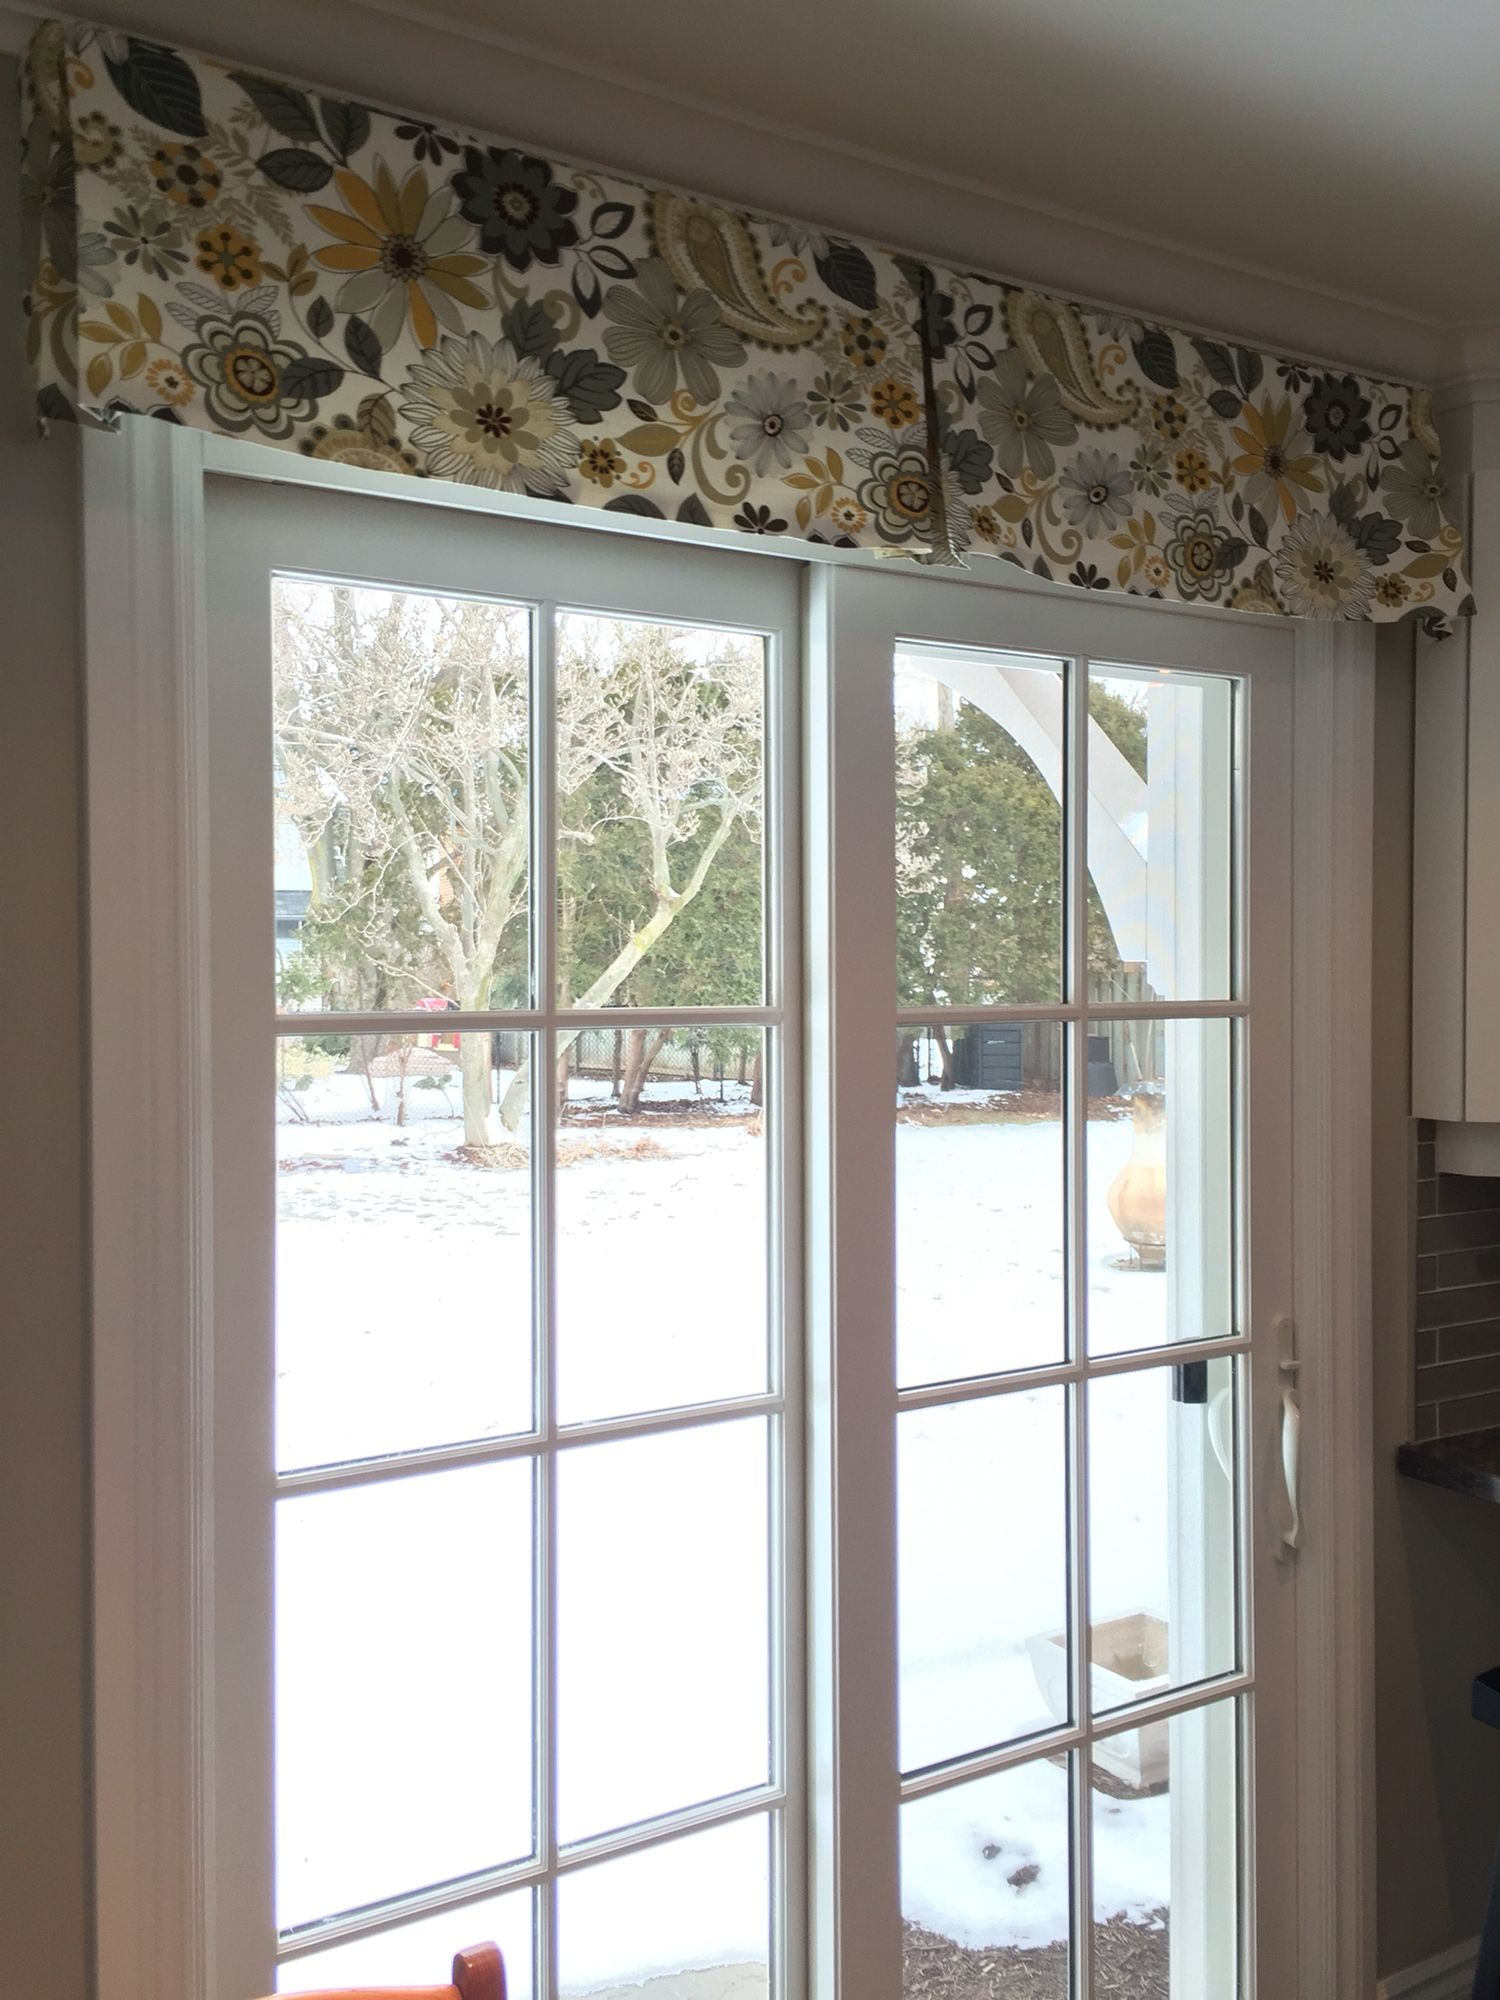 Sliding Door Valance Picture Patio Door Window Treatments Sliding Glass Door Window Treatments Sliding Patio Doors Window Treatment